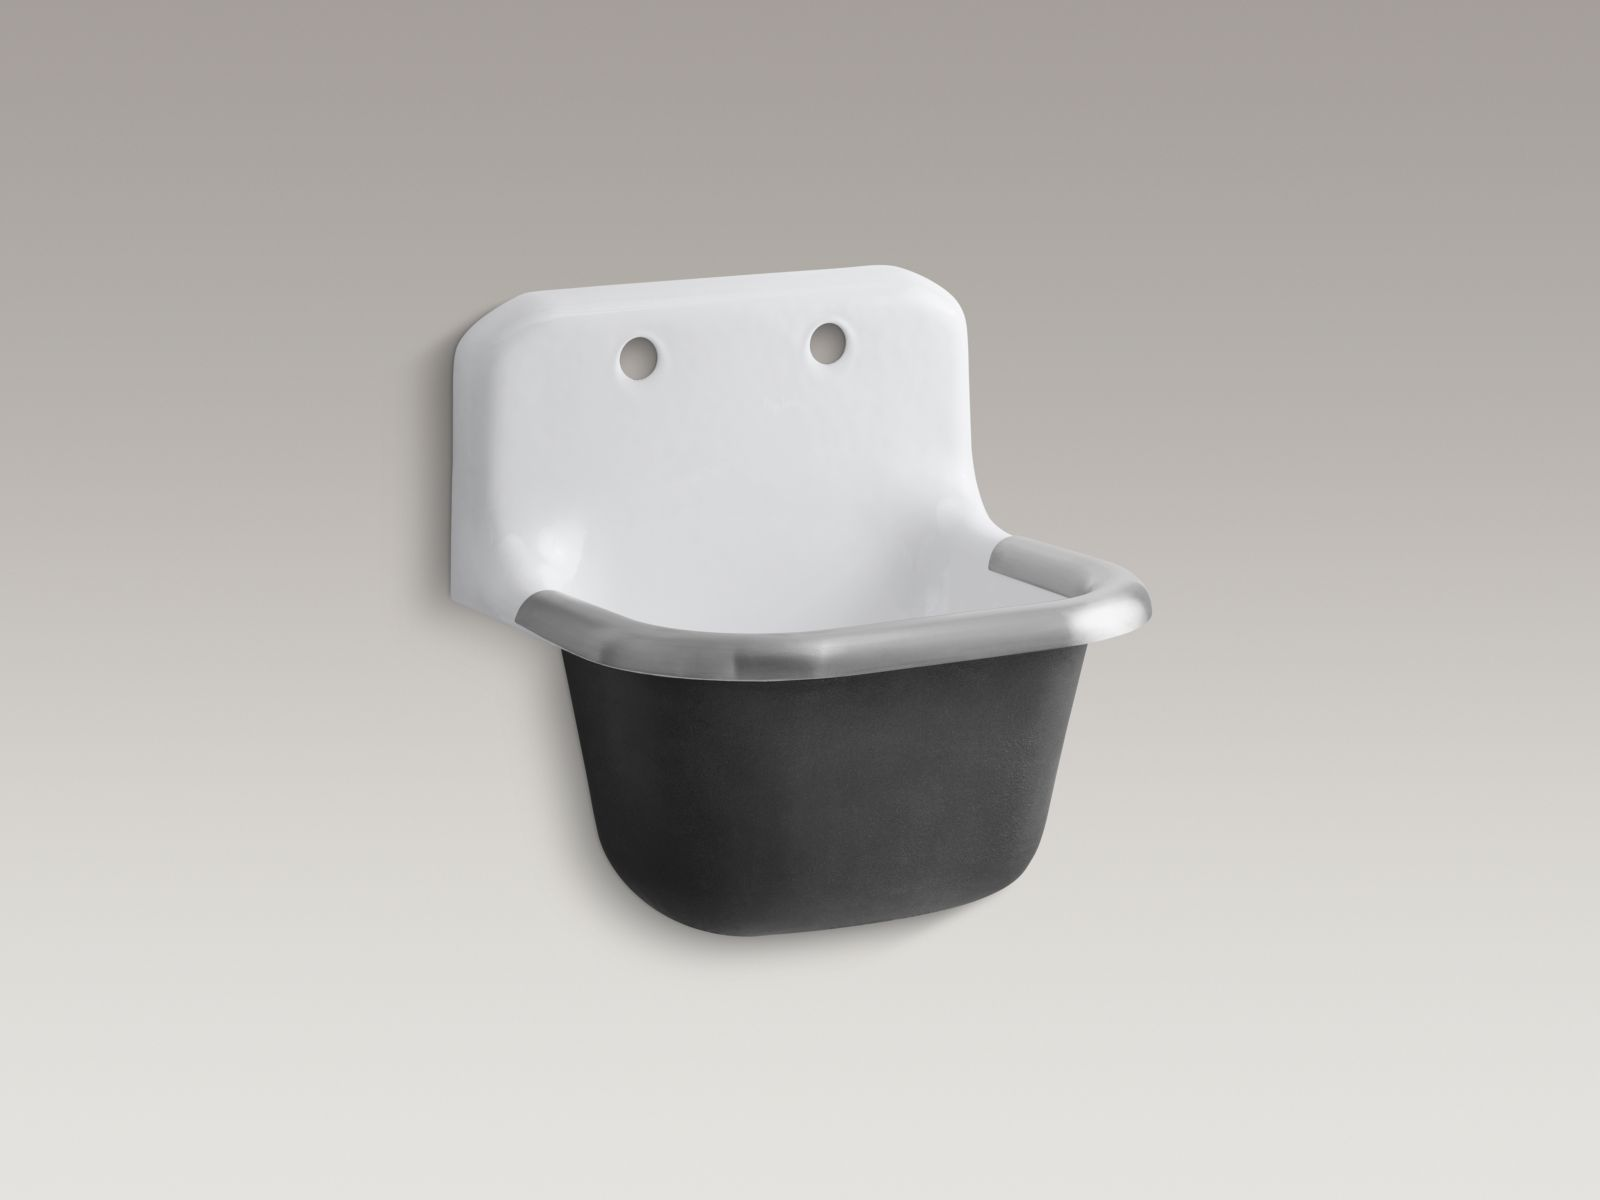 "Kohler K-6714-0 Bannon Wall-mounted 23"" x 19"" Service Sink with Rim Guard and 8"" Widespread Faucet Holes White"